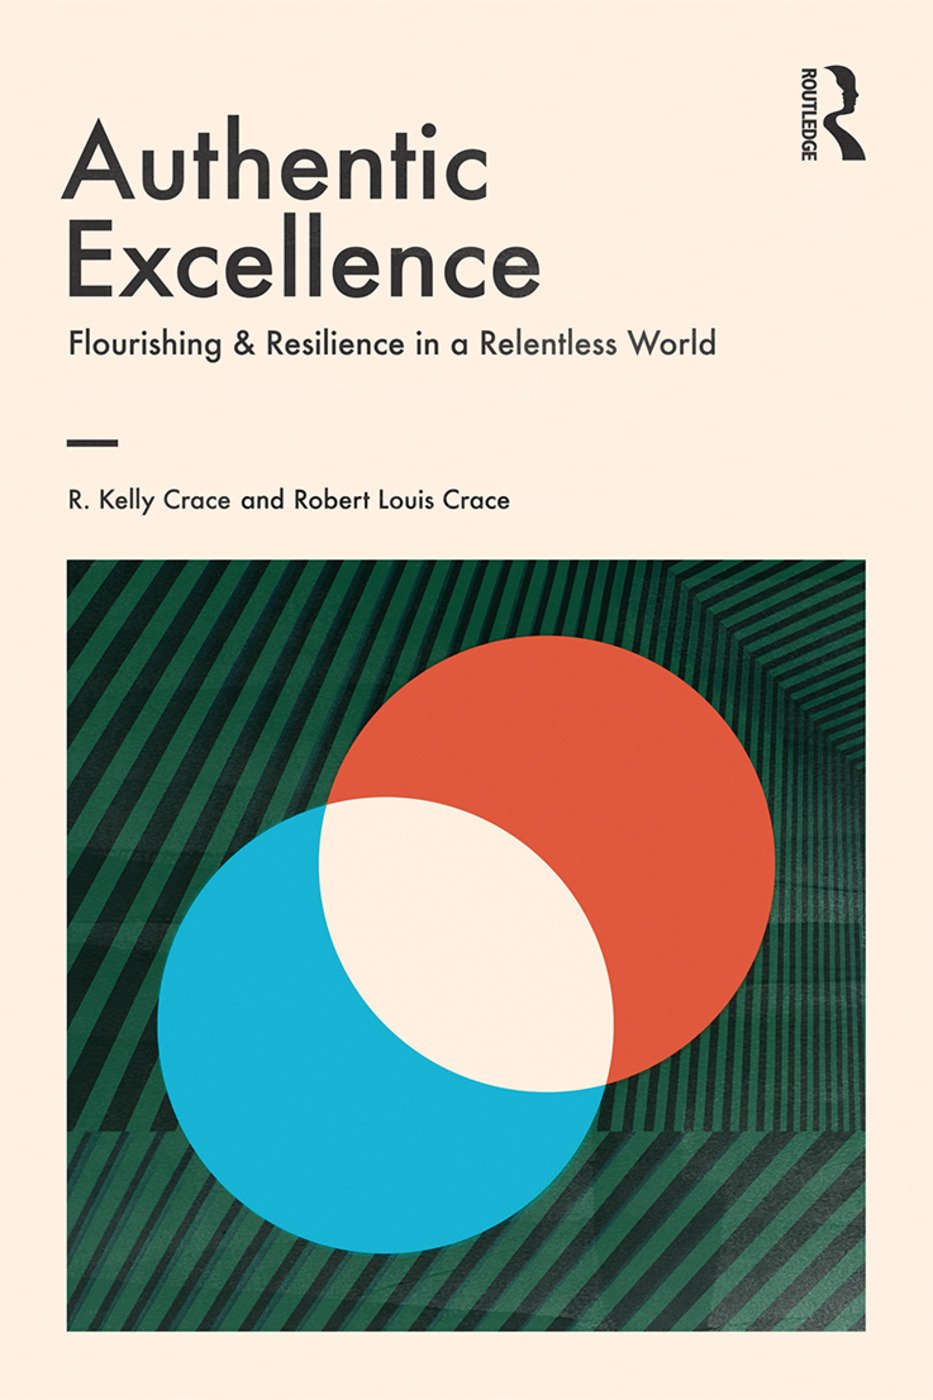 Authentic Excellence: Flourishing & Resilience in a Relentless World book cover